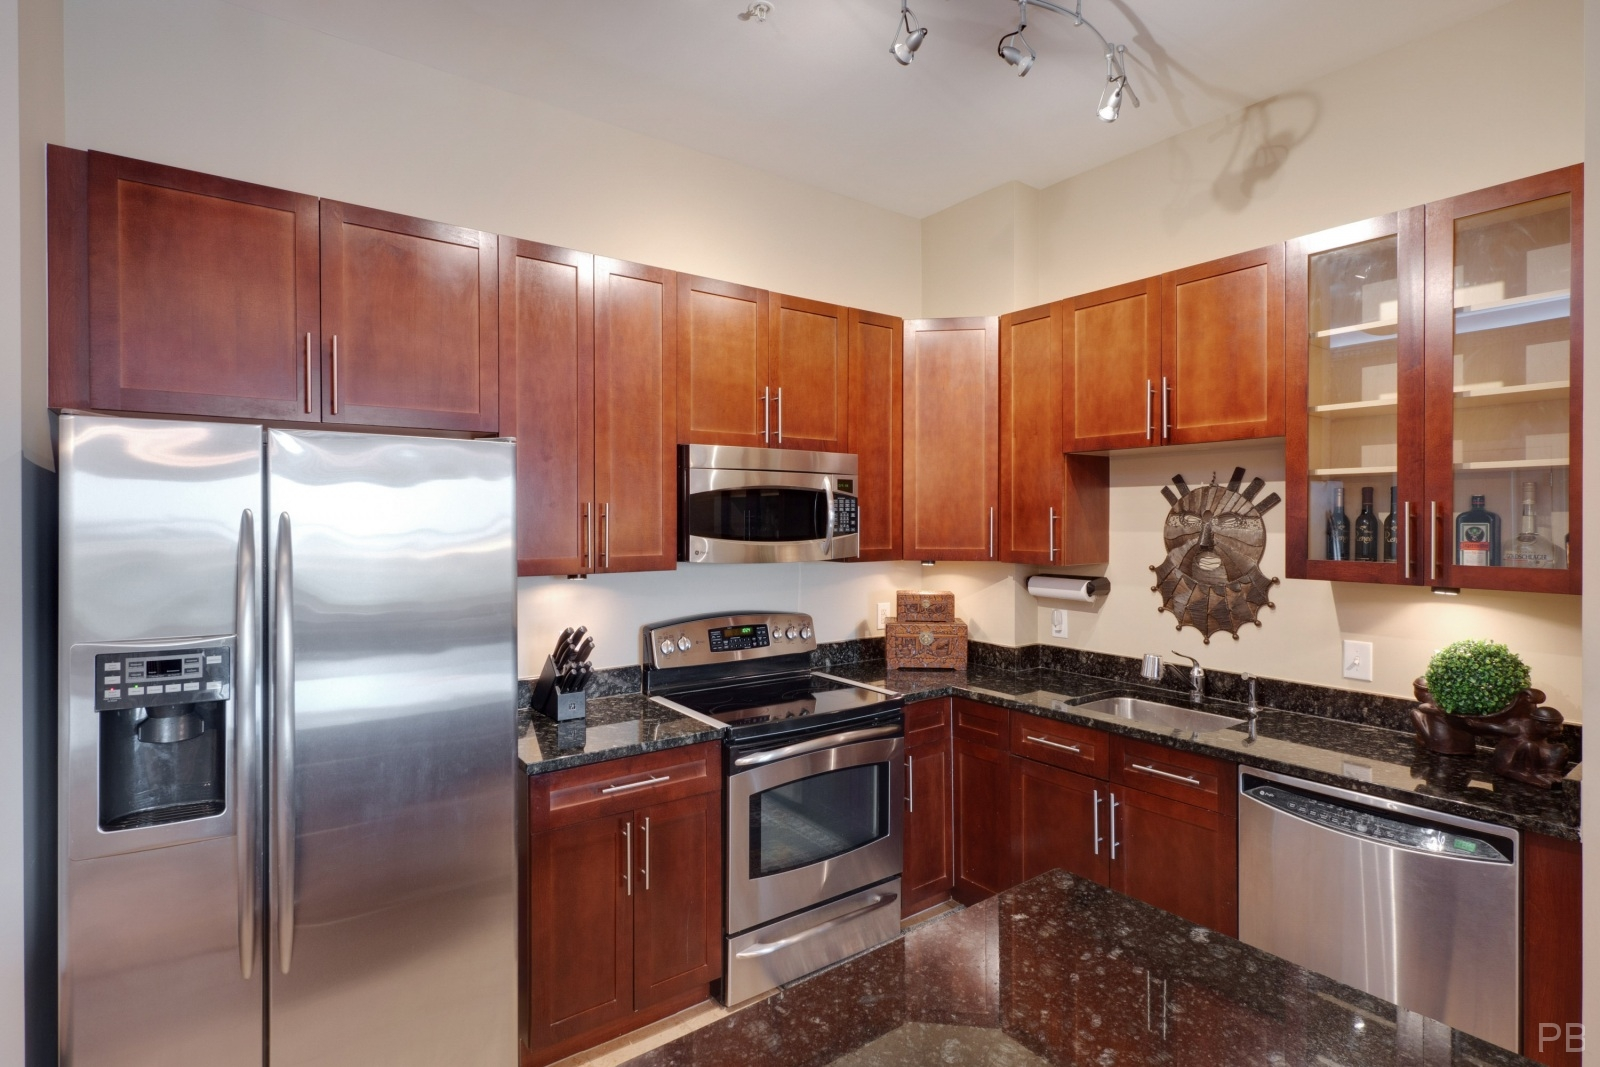 Kitchen with upgraded cabinets and stainless steel appliances